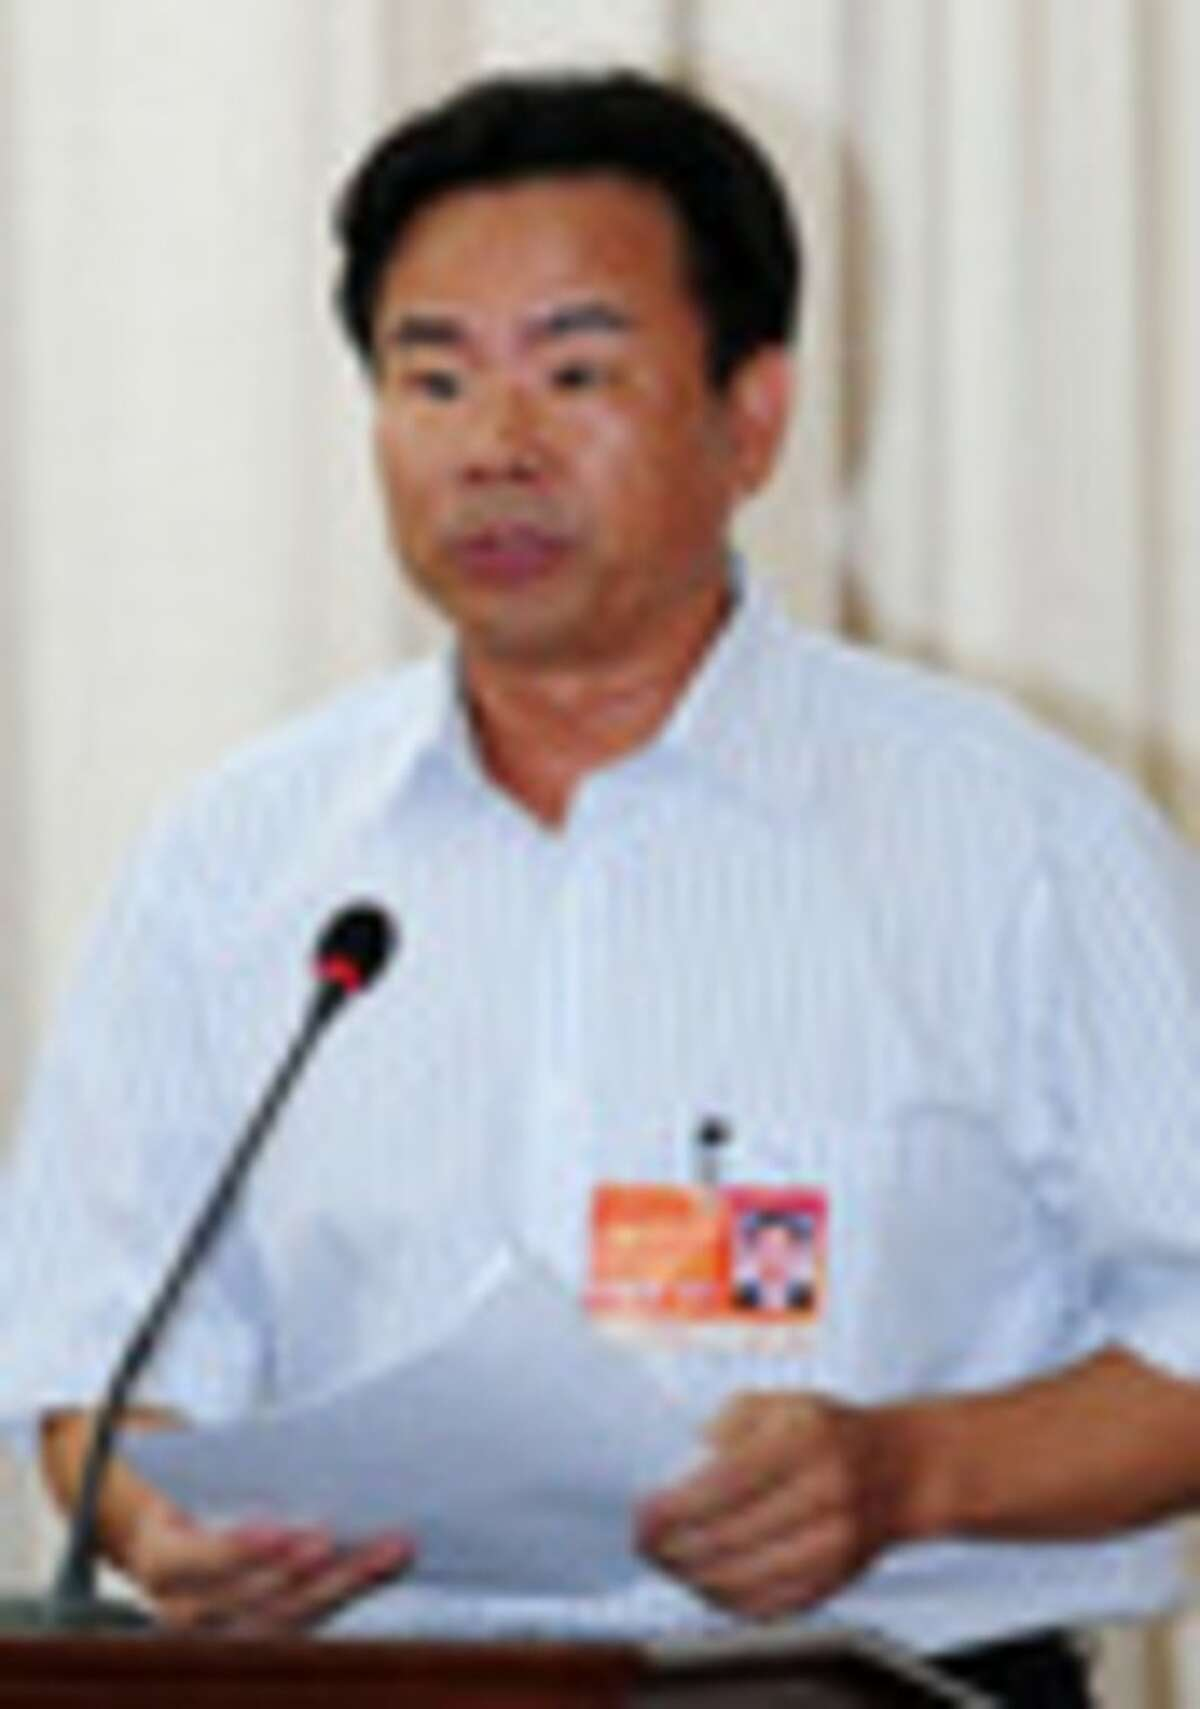 In this Monday, July 23, 2012 photo released by China's Xinhua News Agency, Xiao Jie, the first mayor of the newly established Sansha city, speaks in the first session of the first Sansha Municipal People's Congress held on Yongxing Island in south China's Hainan province. China has rolled out the red carpet for its newest city, on a small, remote island in the South China Sea that is also claimed by Vietnam. Beijing on Tuesday, July 24, formally established the city of Sansha to bolster its claim on the sea's oil and gas-rich waters. The move is likely to anger China's neighbors and competing claimants in a dispute that has at times led to maritime standoffs. (AP Photo/Xinhua, Hou Jiansen) NO SALES